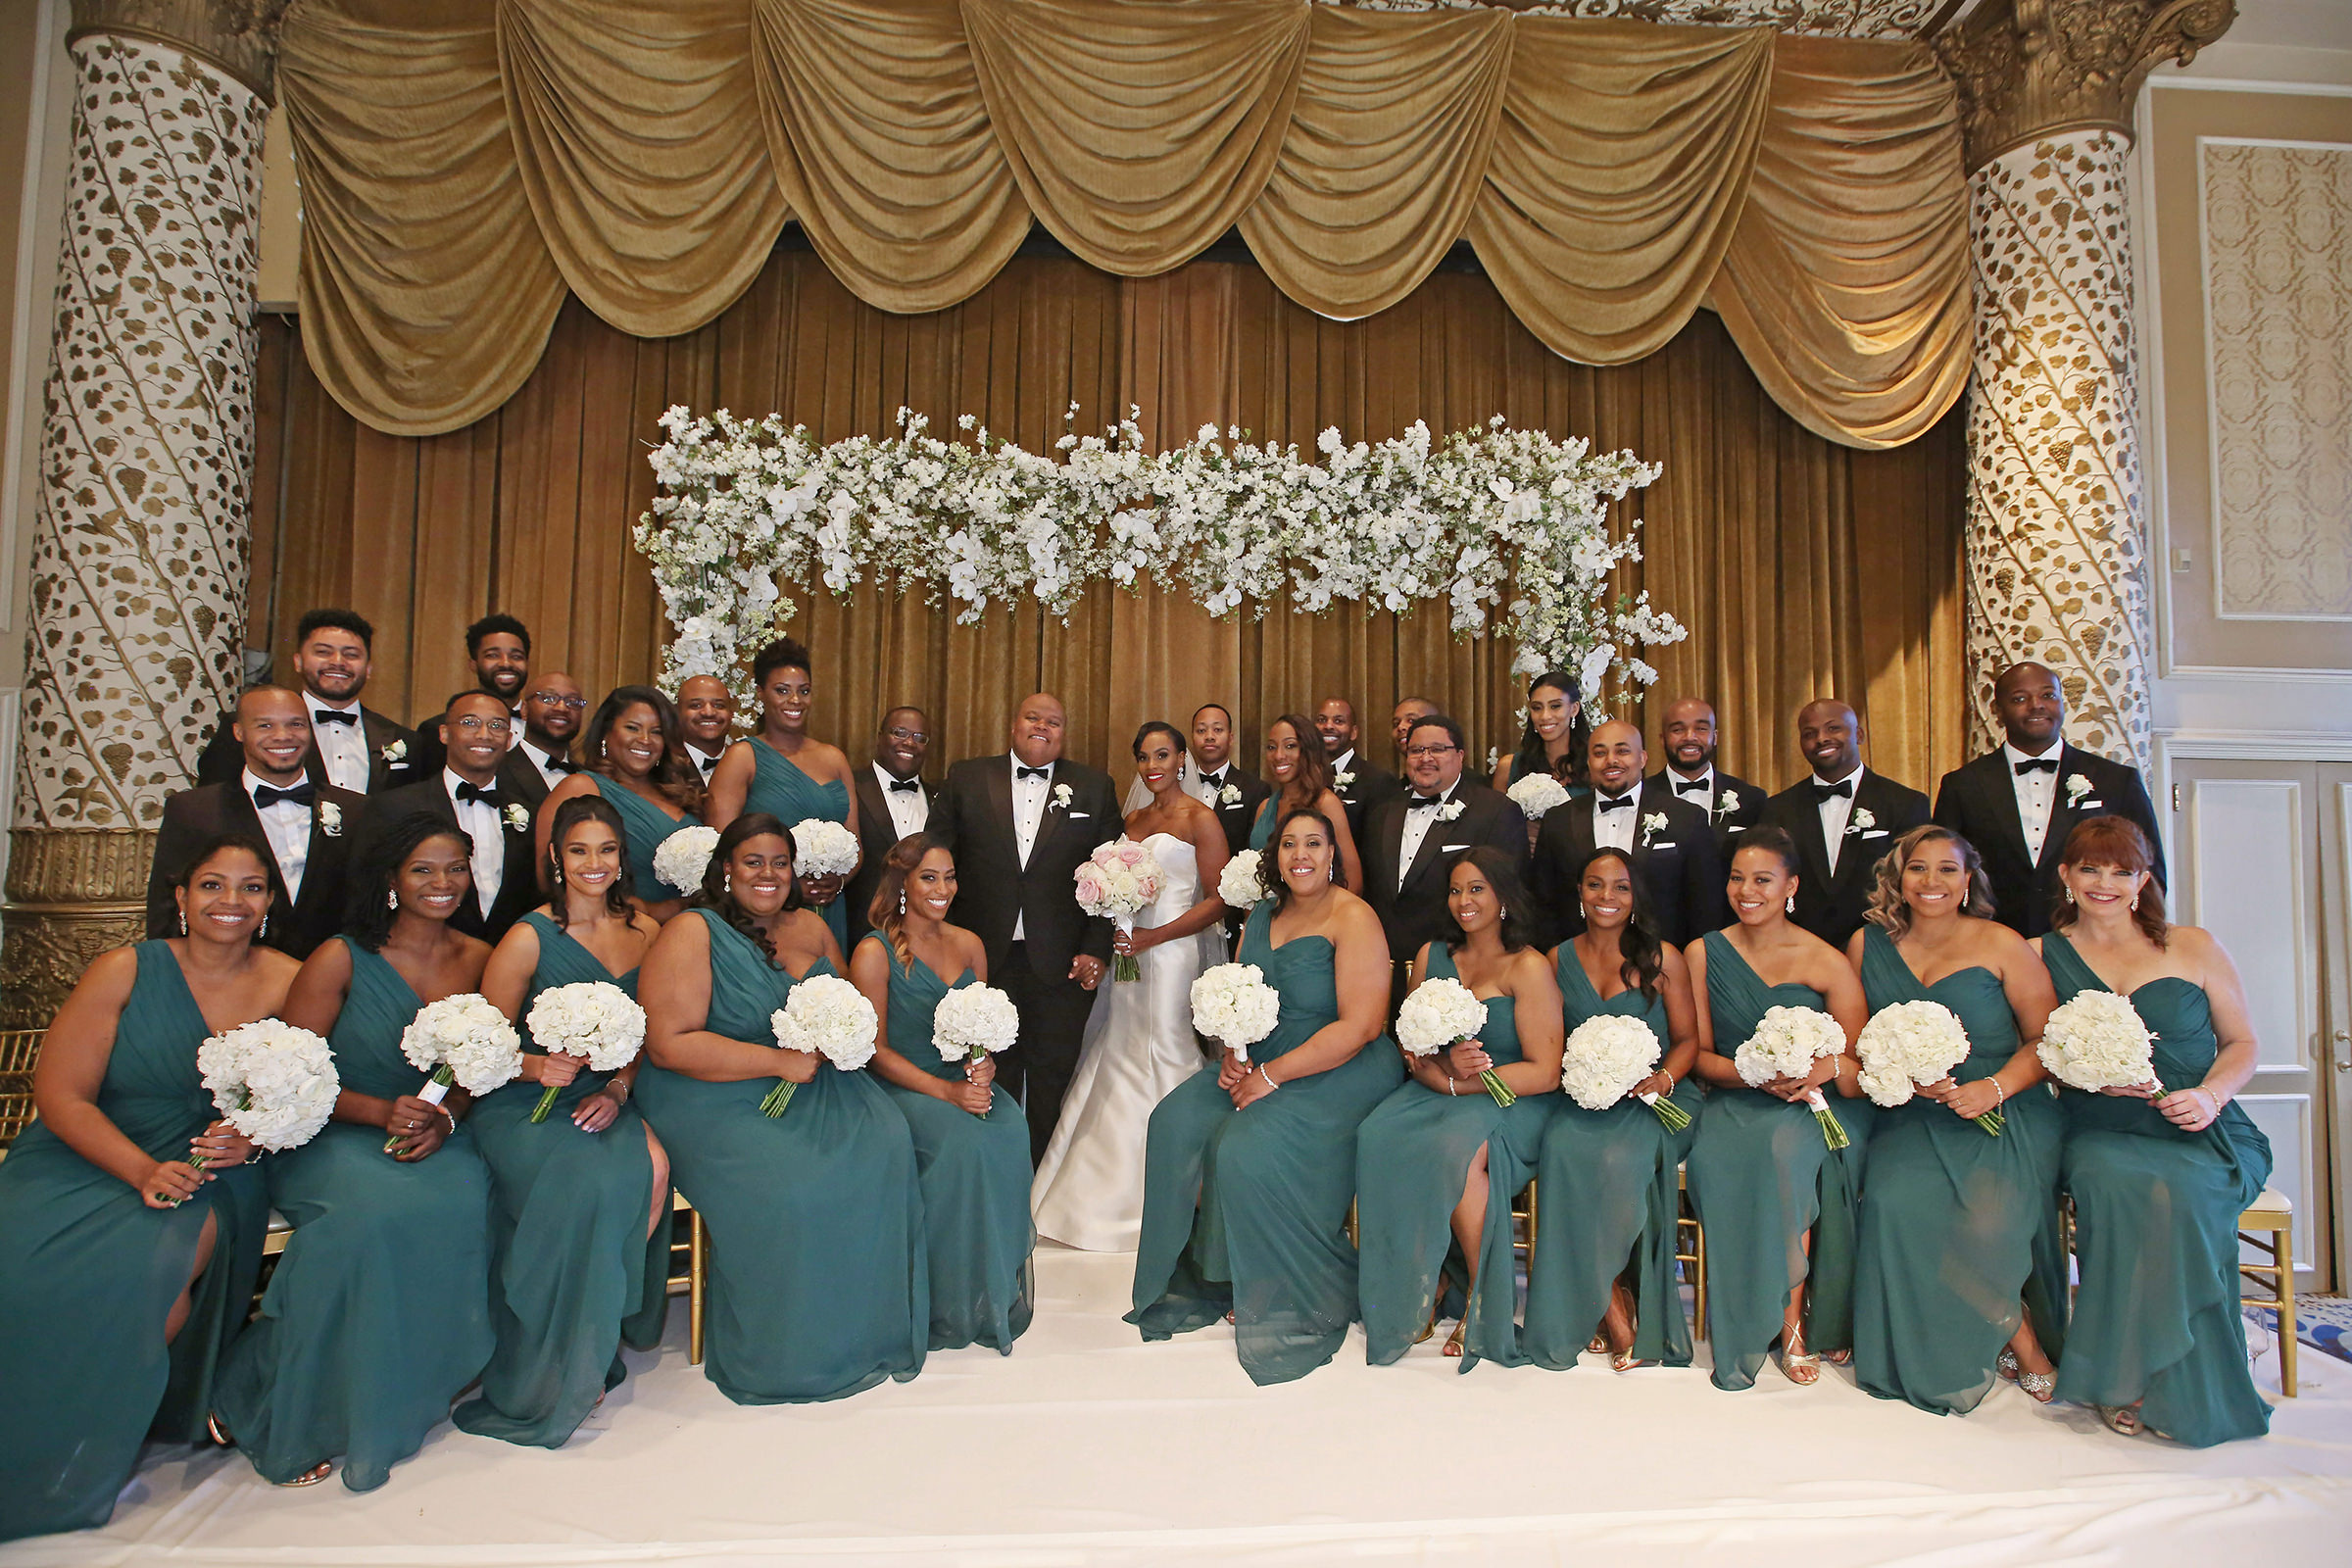 Large wedding party in teal and white - photo by Kenny Kim Photography